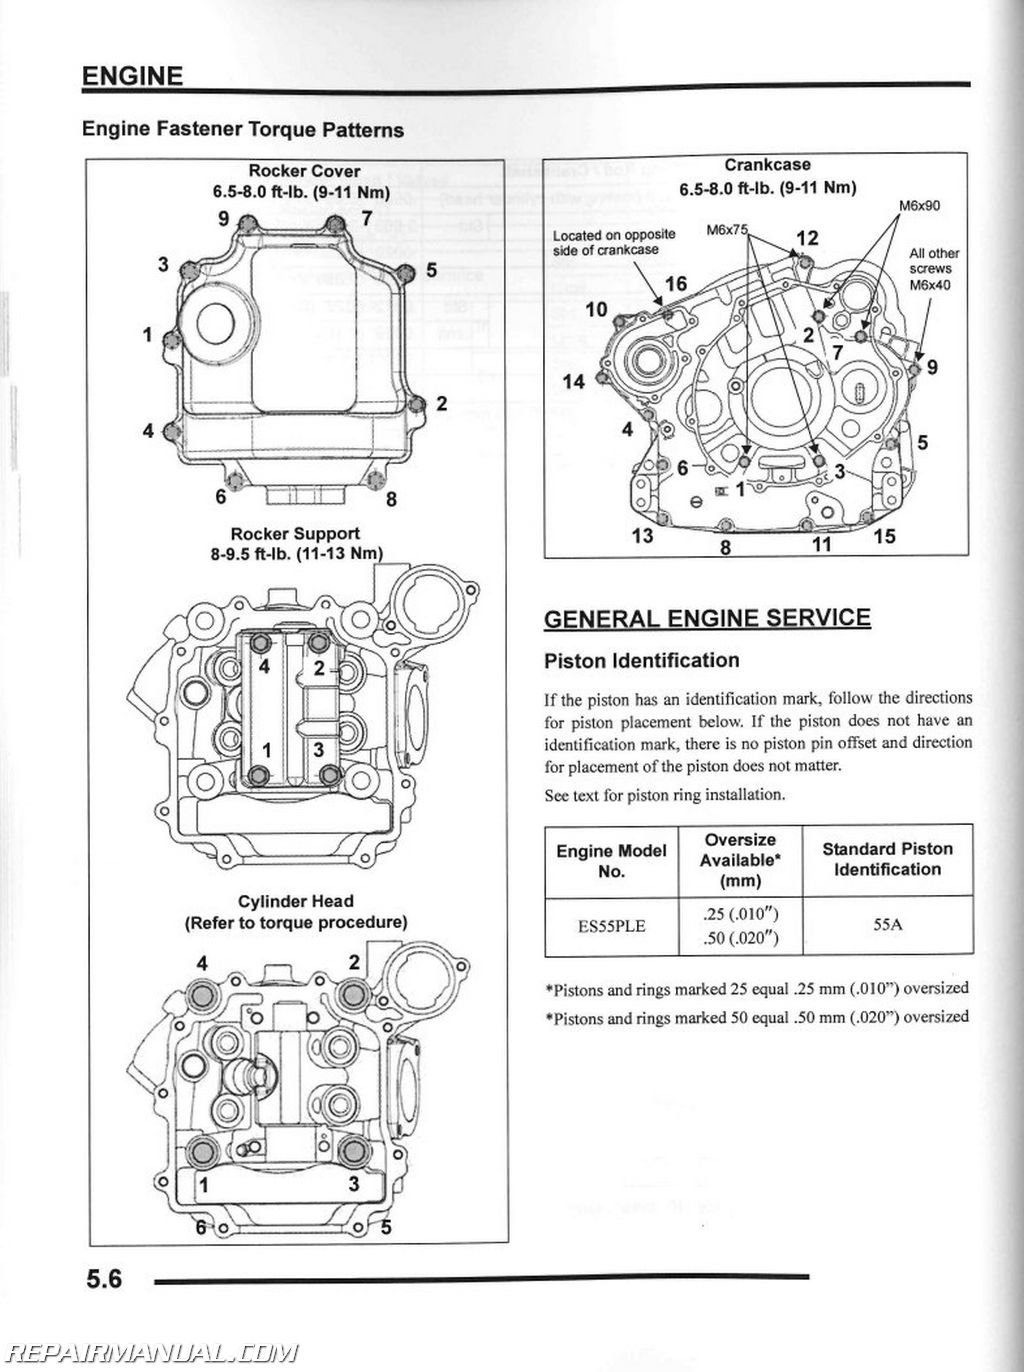 hight resolution of 2010 polaris sportsman xp 550 atv service manual 2009 polaris rzr 800 wiring diagram 2009 polaris